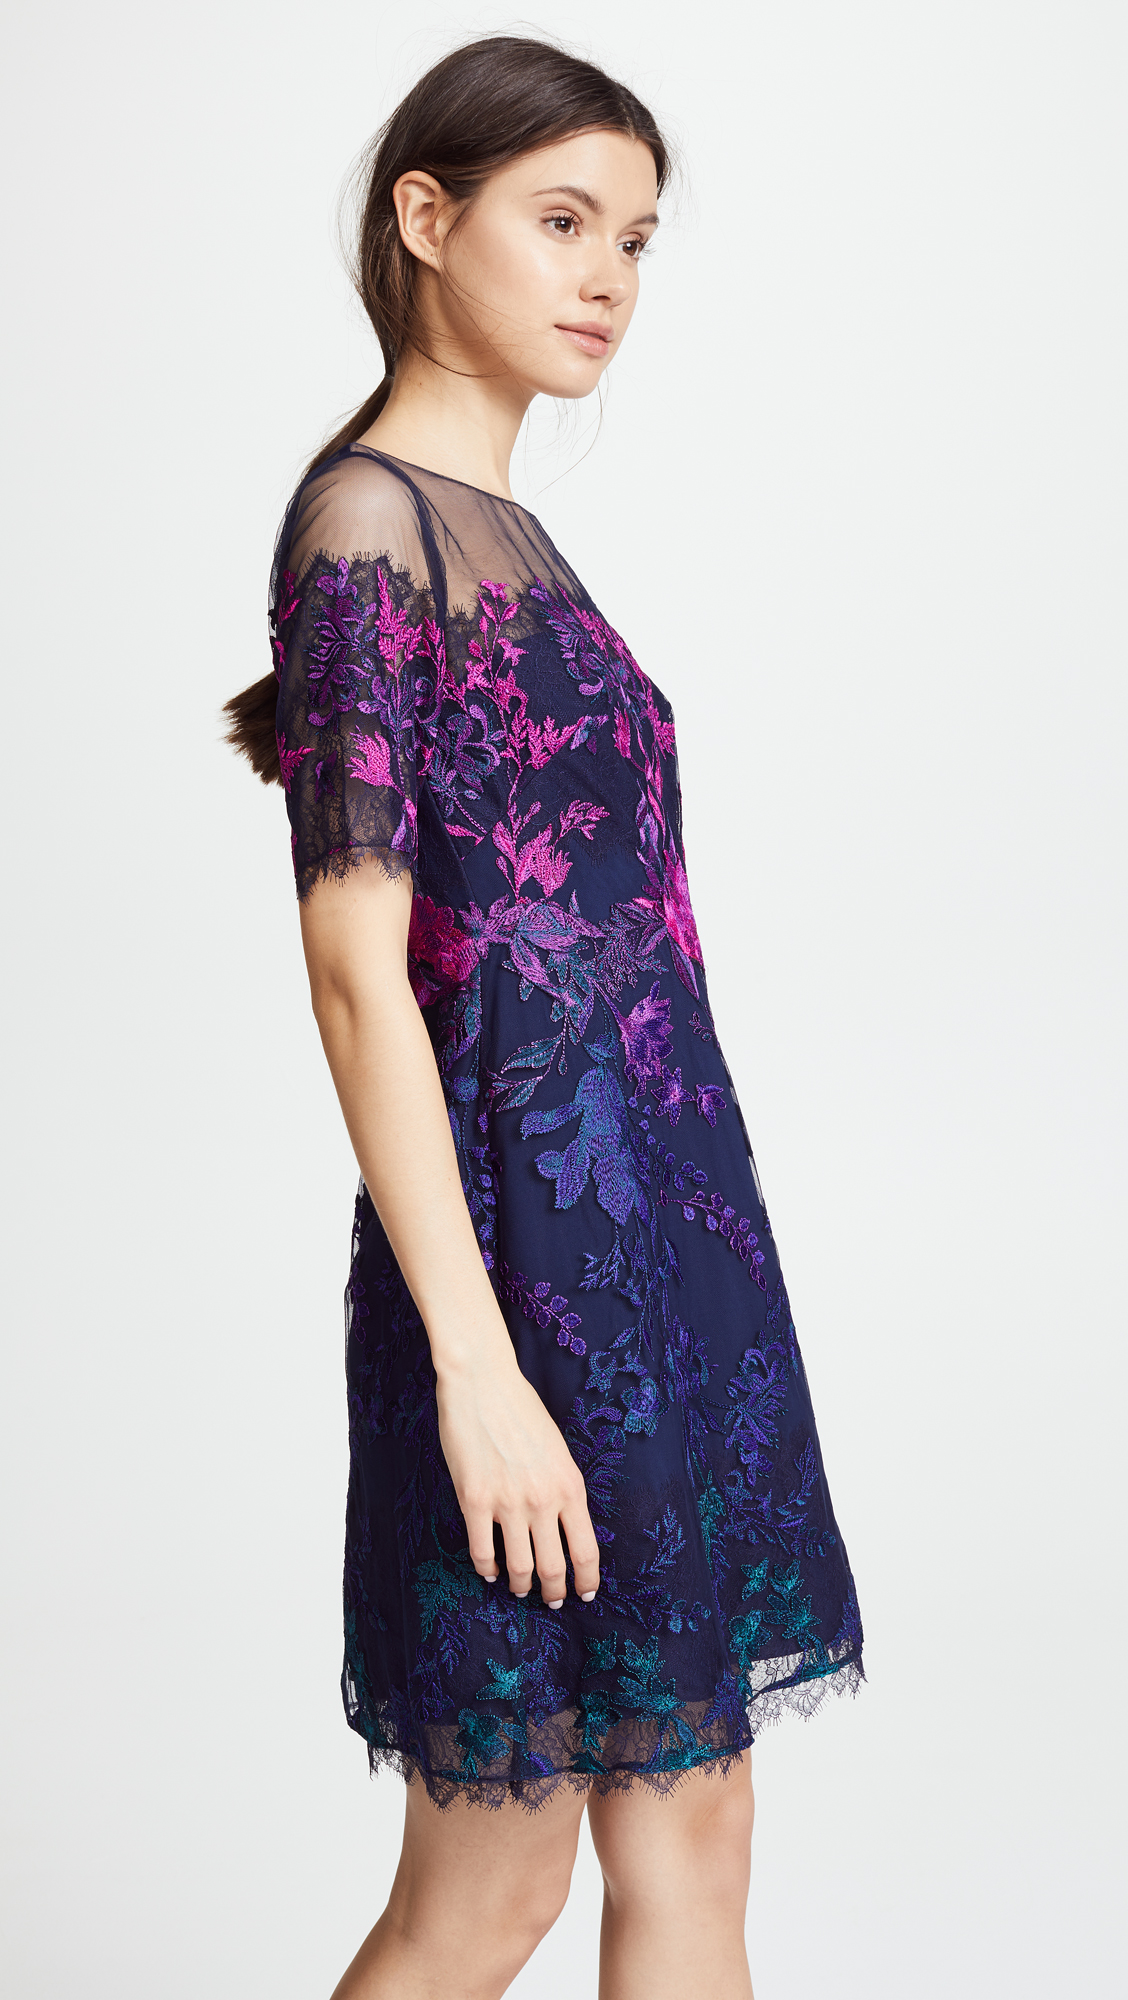 Marchesa Notte Ombre Cocktail Dress with Floral Embroidery | SHOPBOP